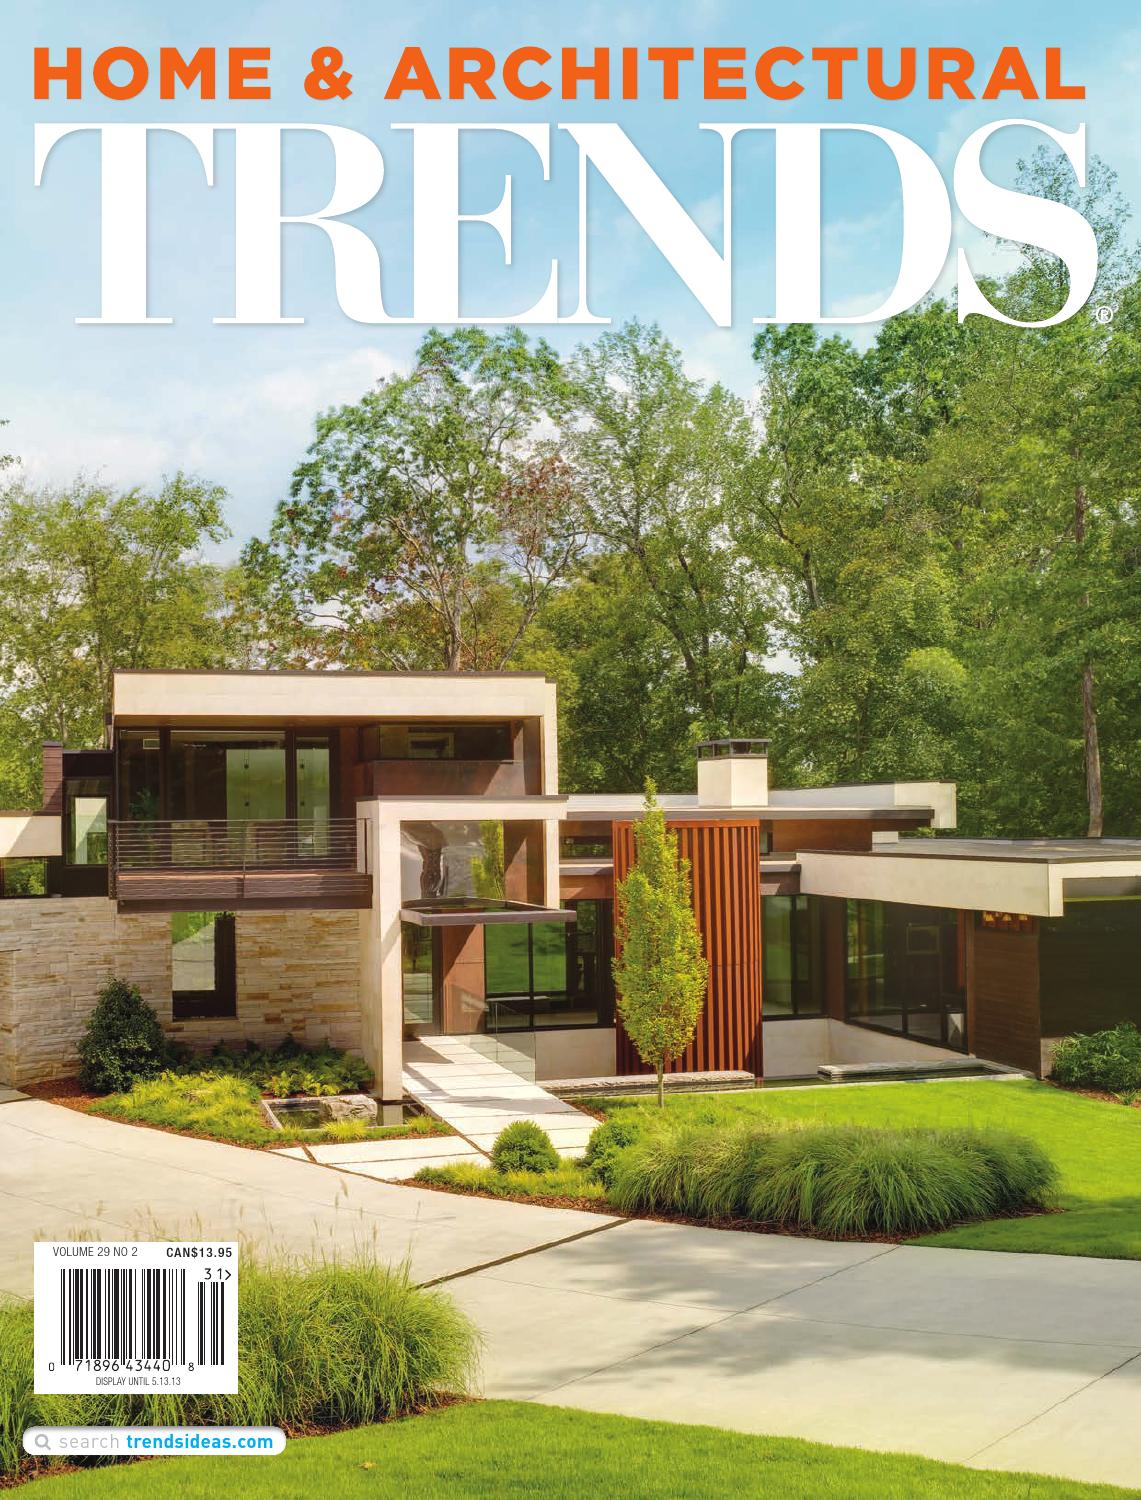 Home architectural trends usa vol 29 02 by trendsideas - Home and architectural trends magazine ...